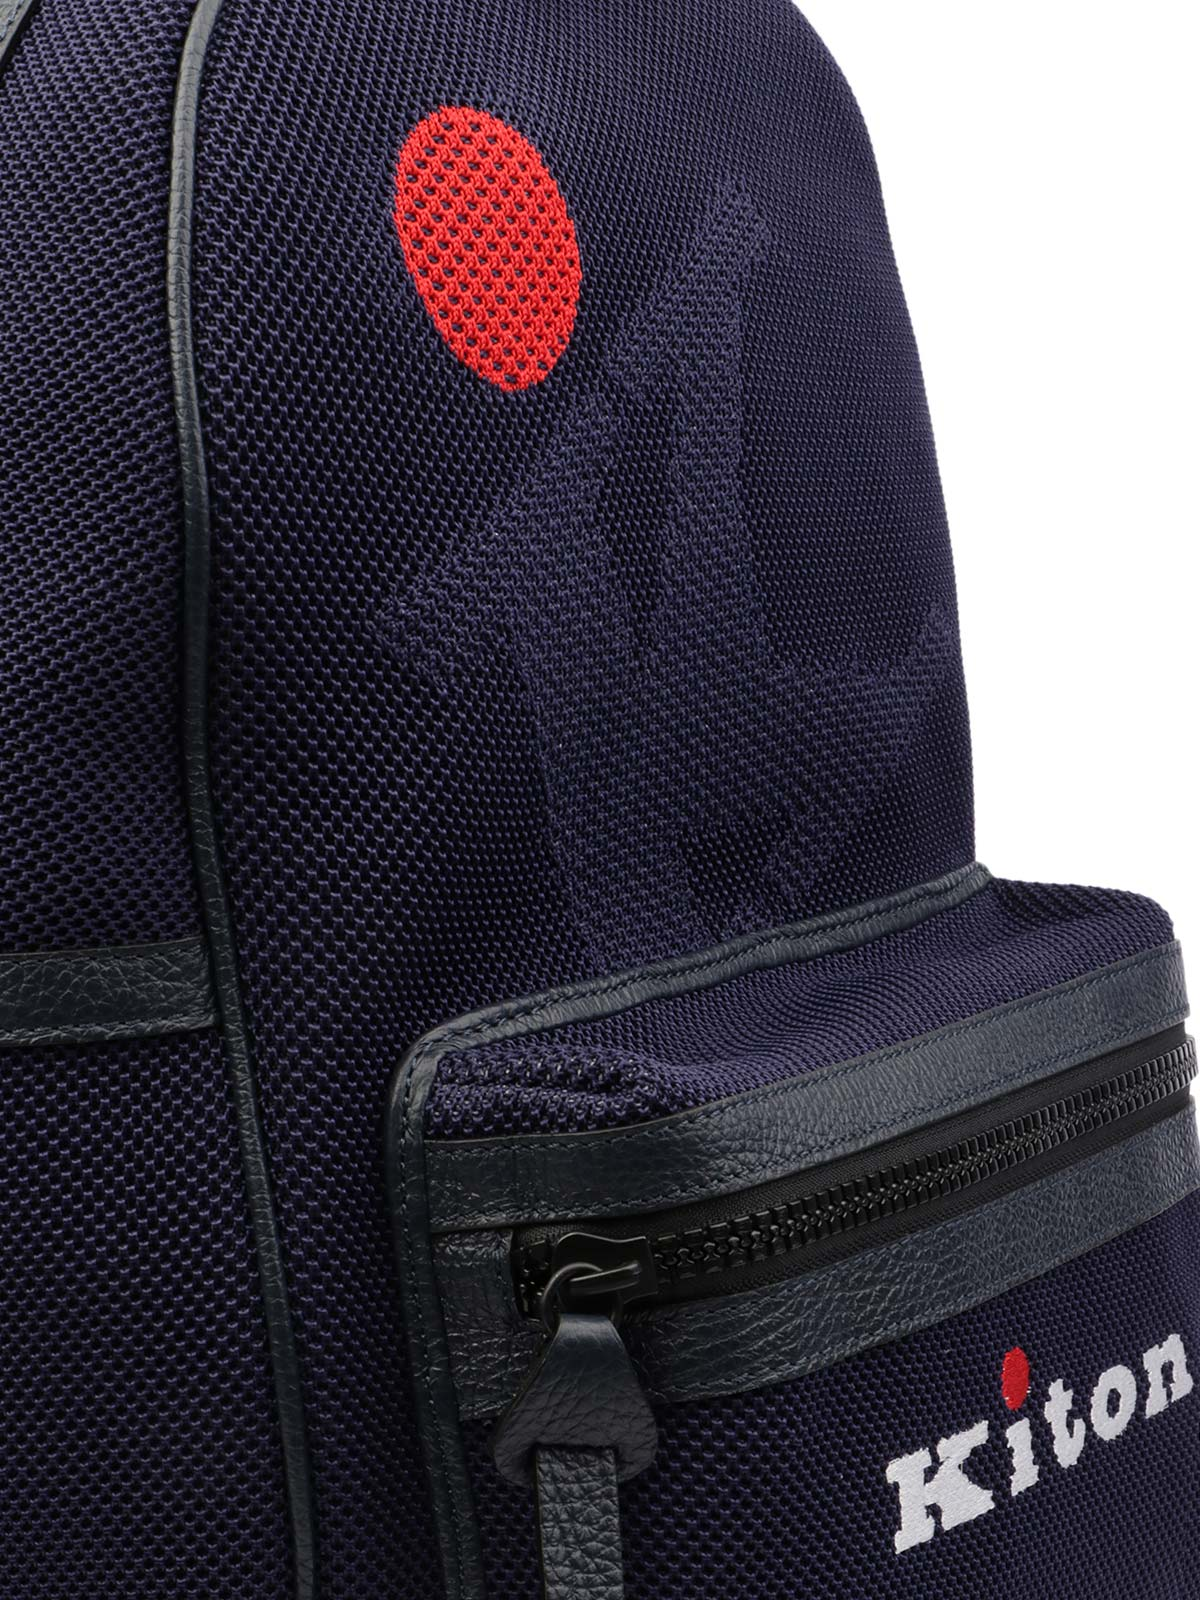 Picture of KITON | Men's Knitted Backpack with Logo